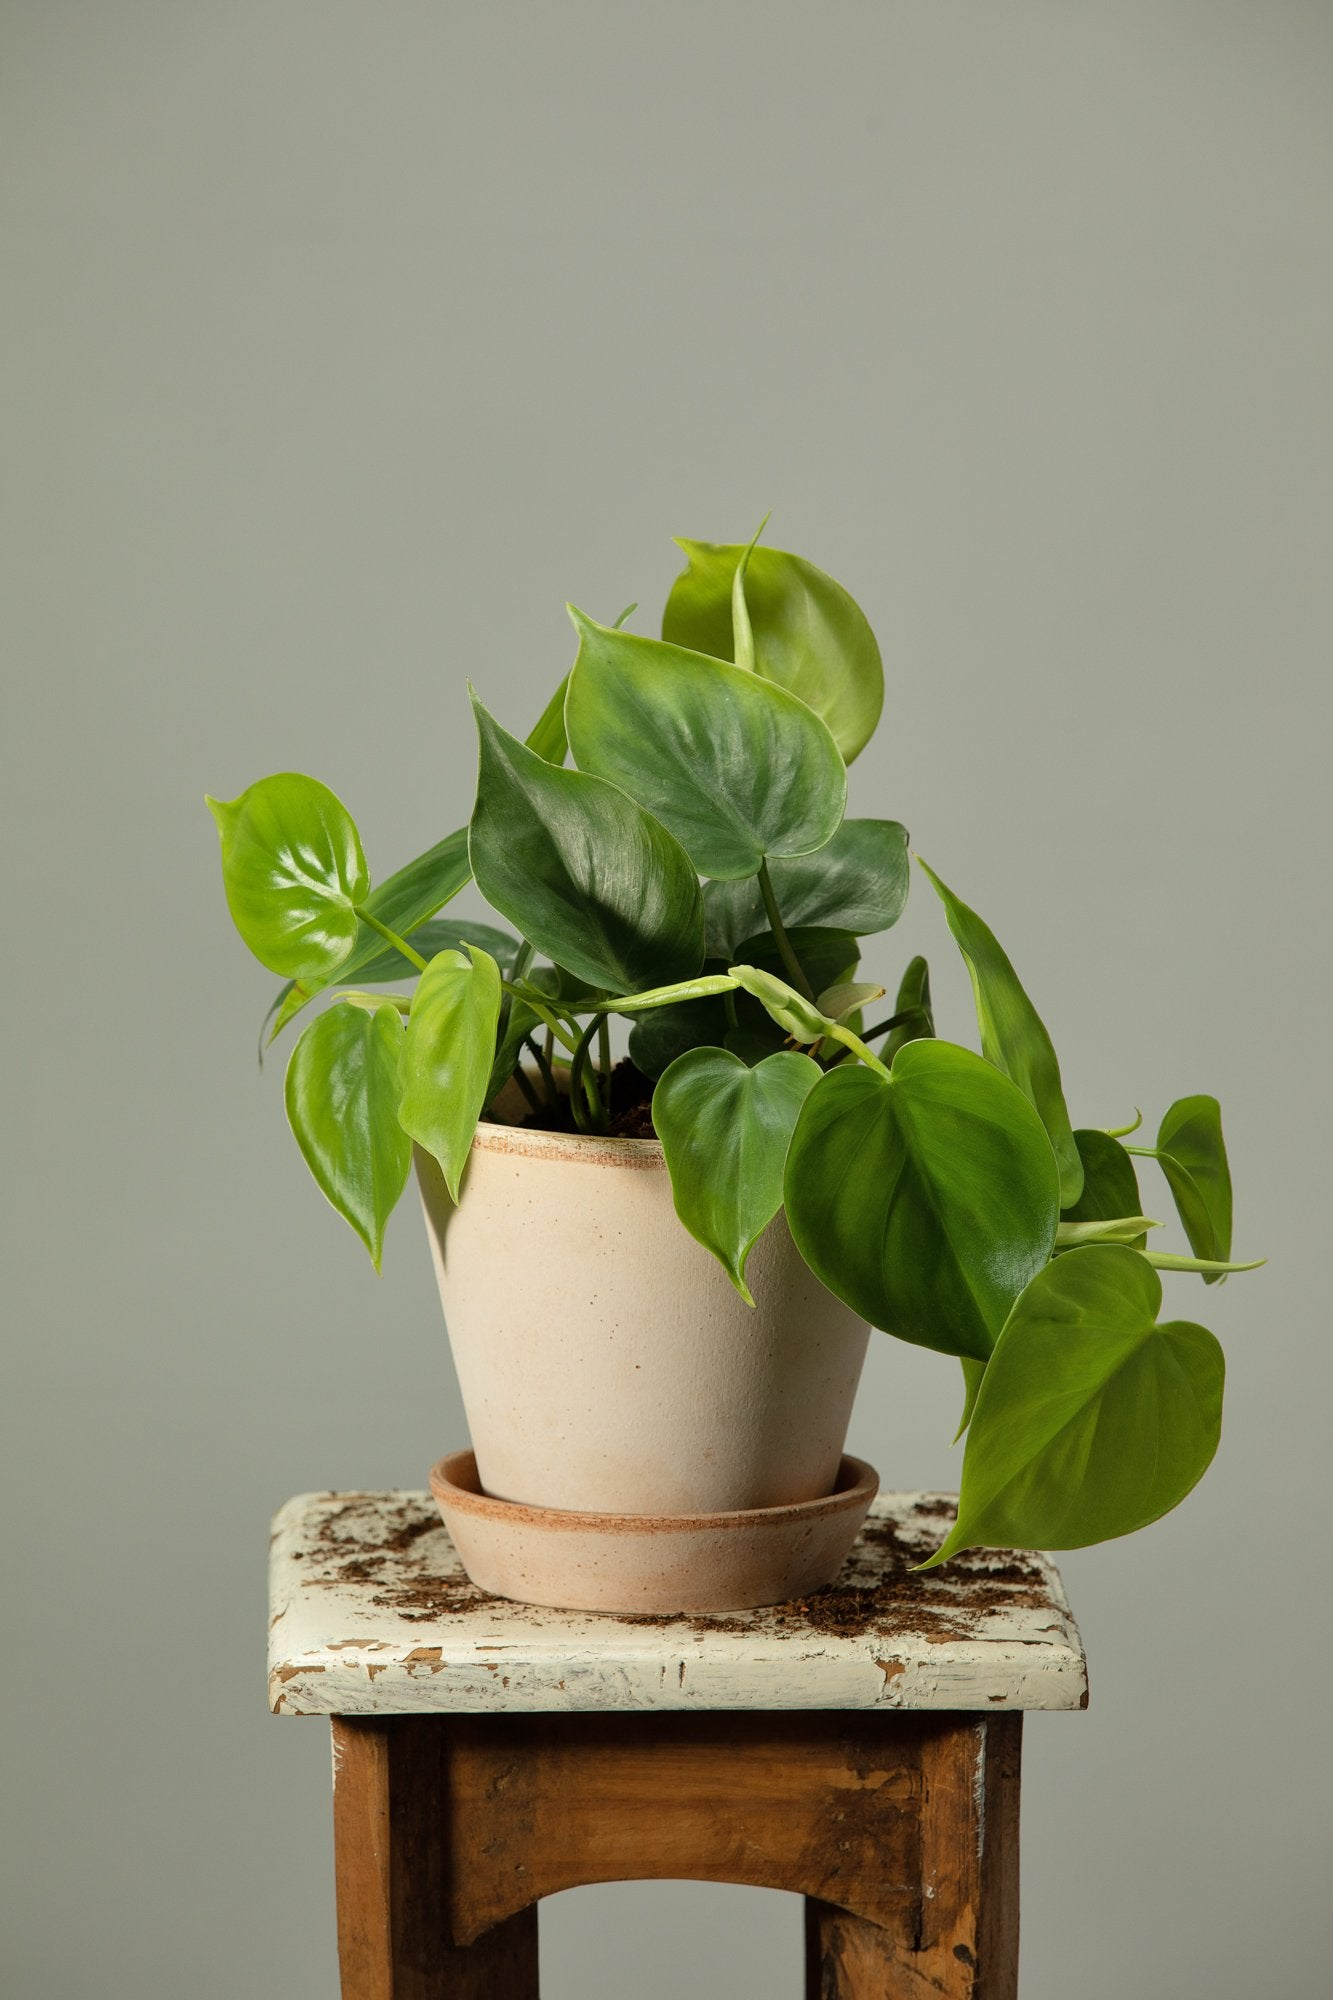 The Philodendron Scandens climbing indoor plant potted in a Berg's Julie Rosa Italian houseplant pot.